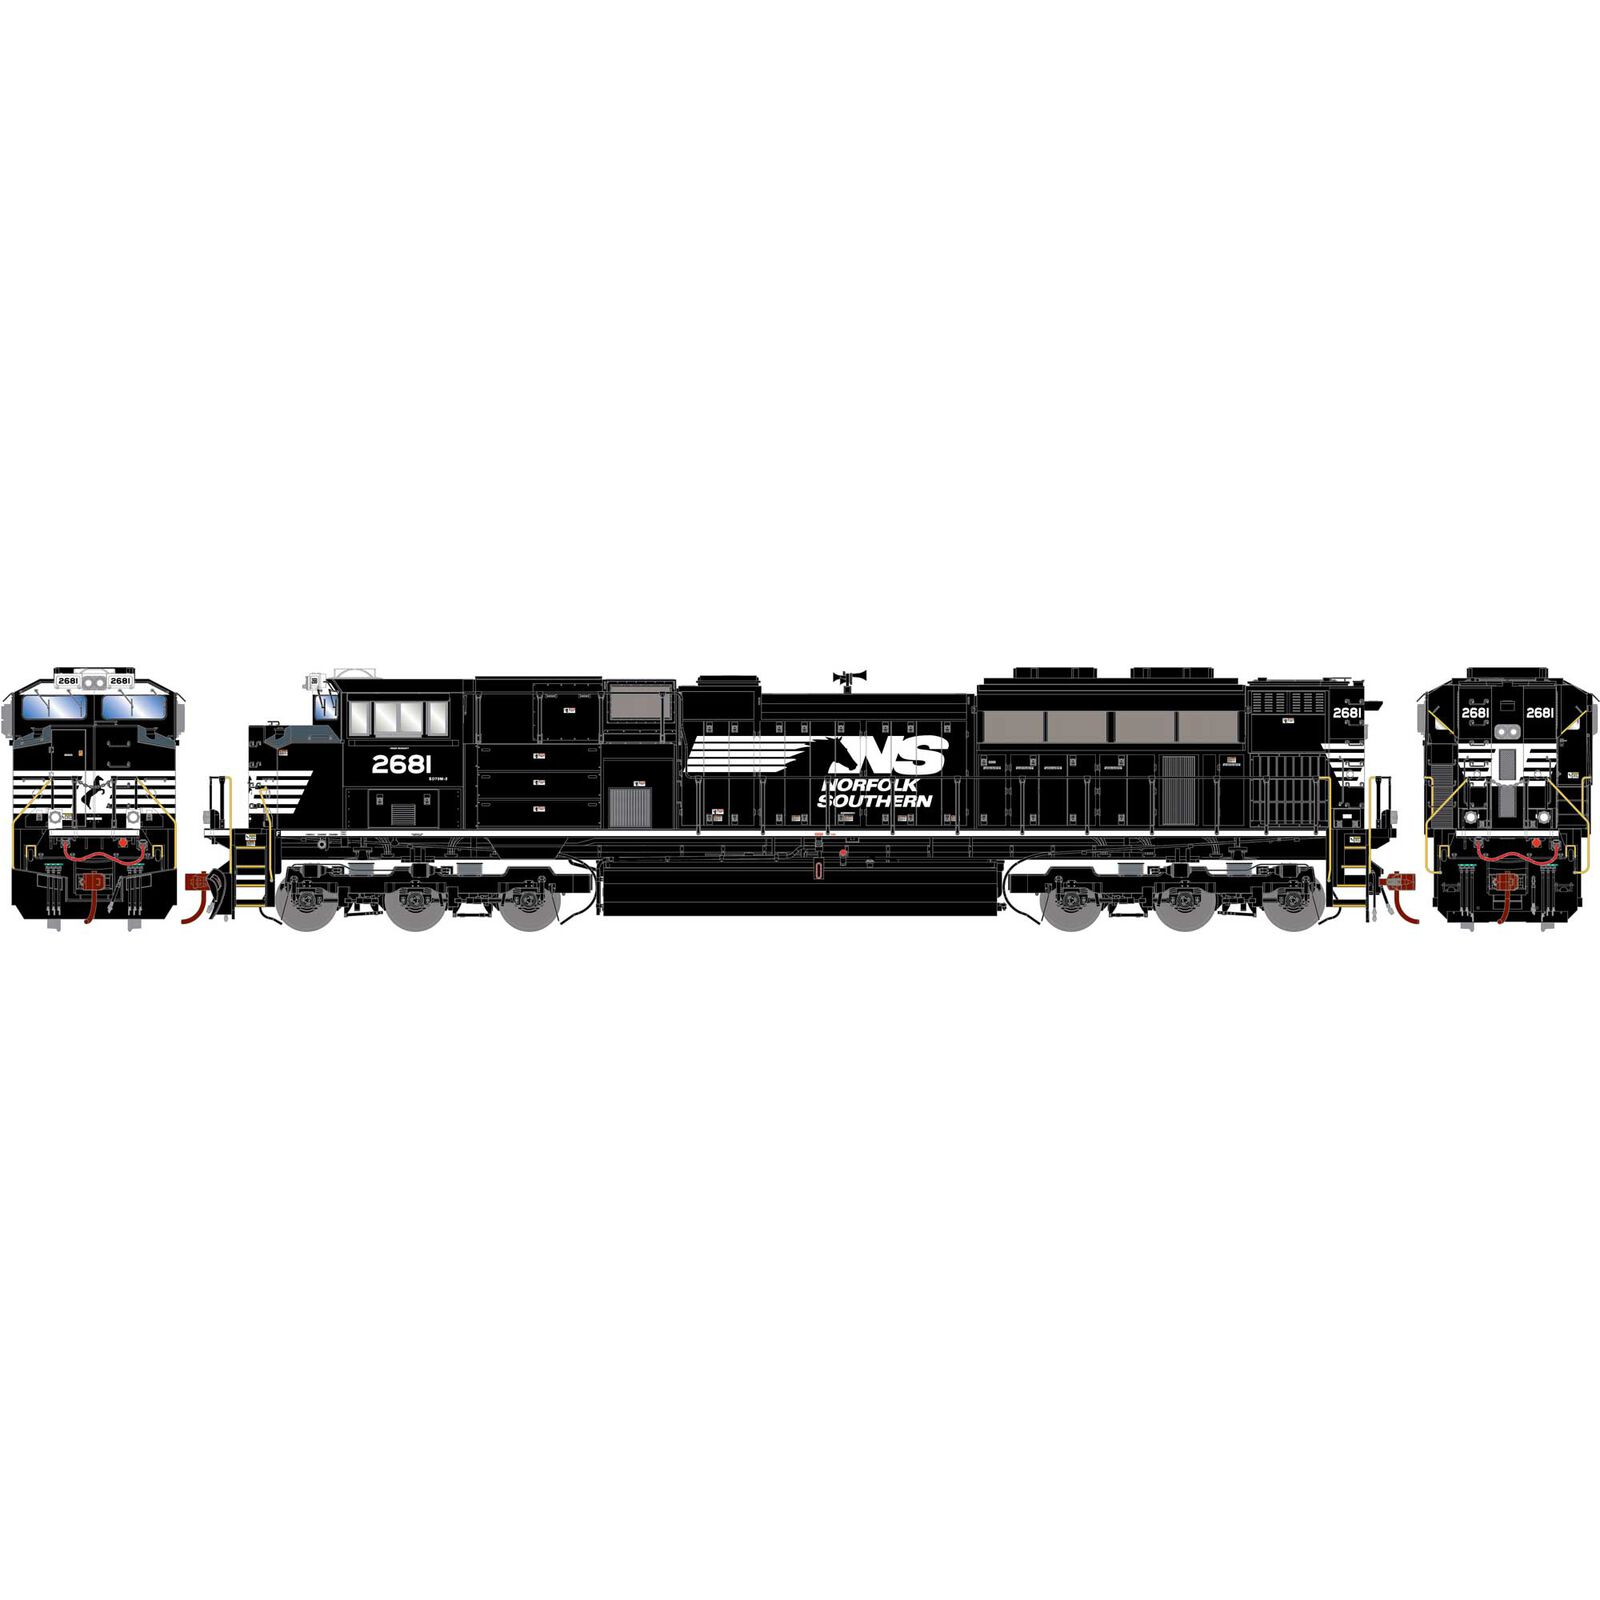 HO G2 SD70M-2 with DCC & Sound, NS #2681